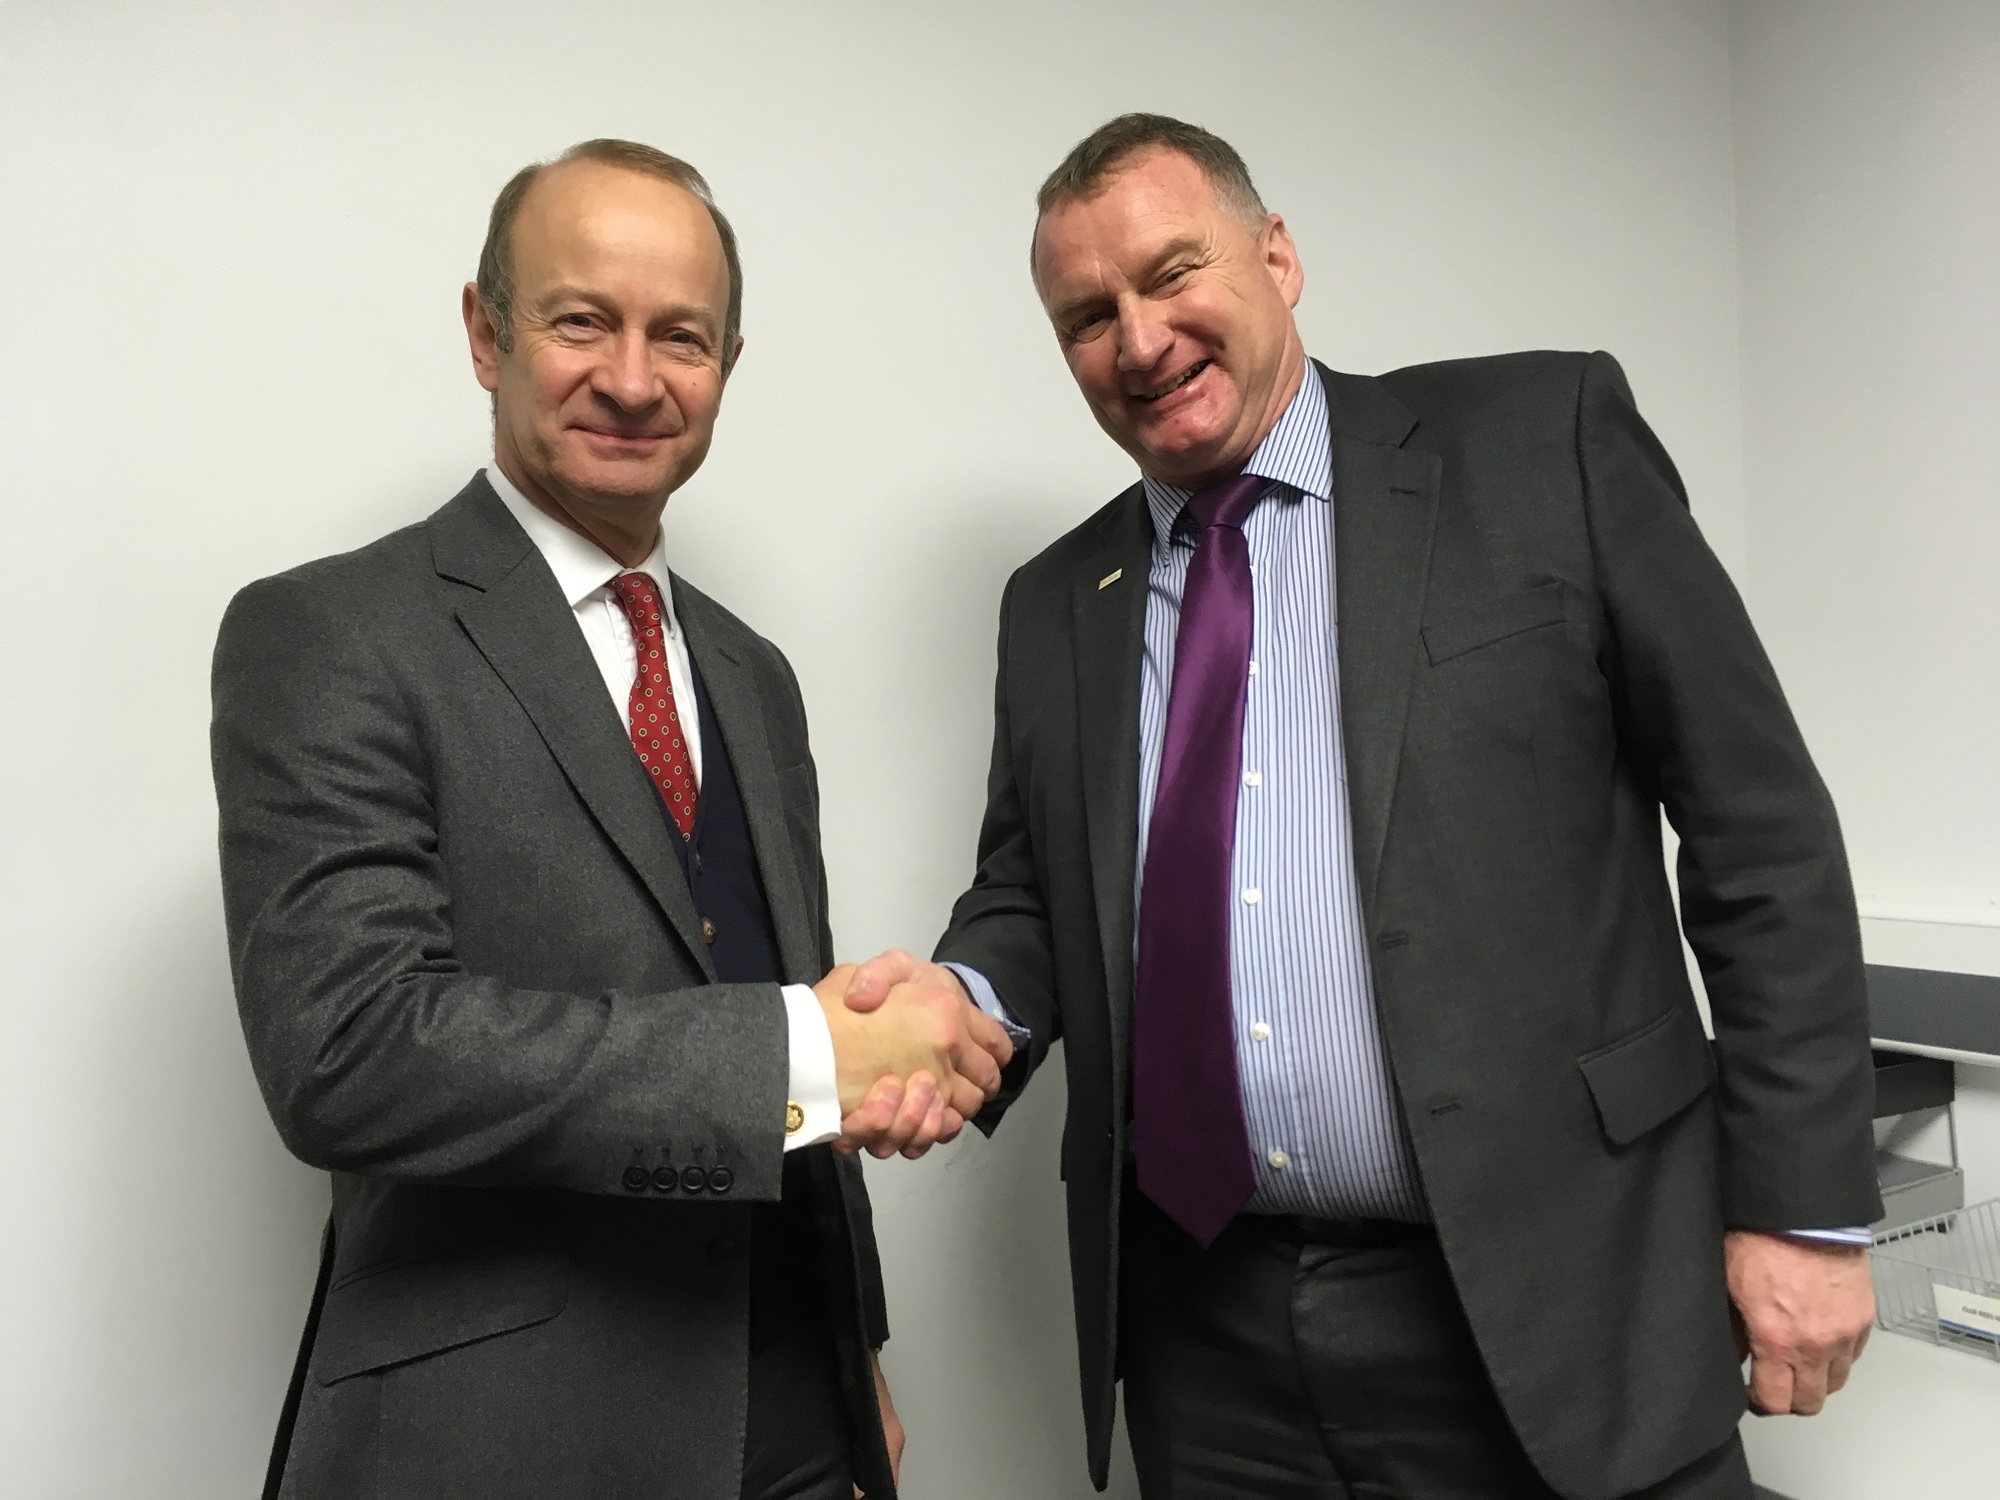 UKIP leader Henry Bolton with Cllr Sean Hornby